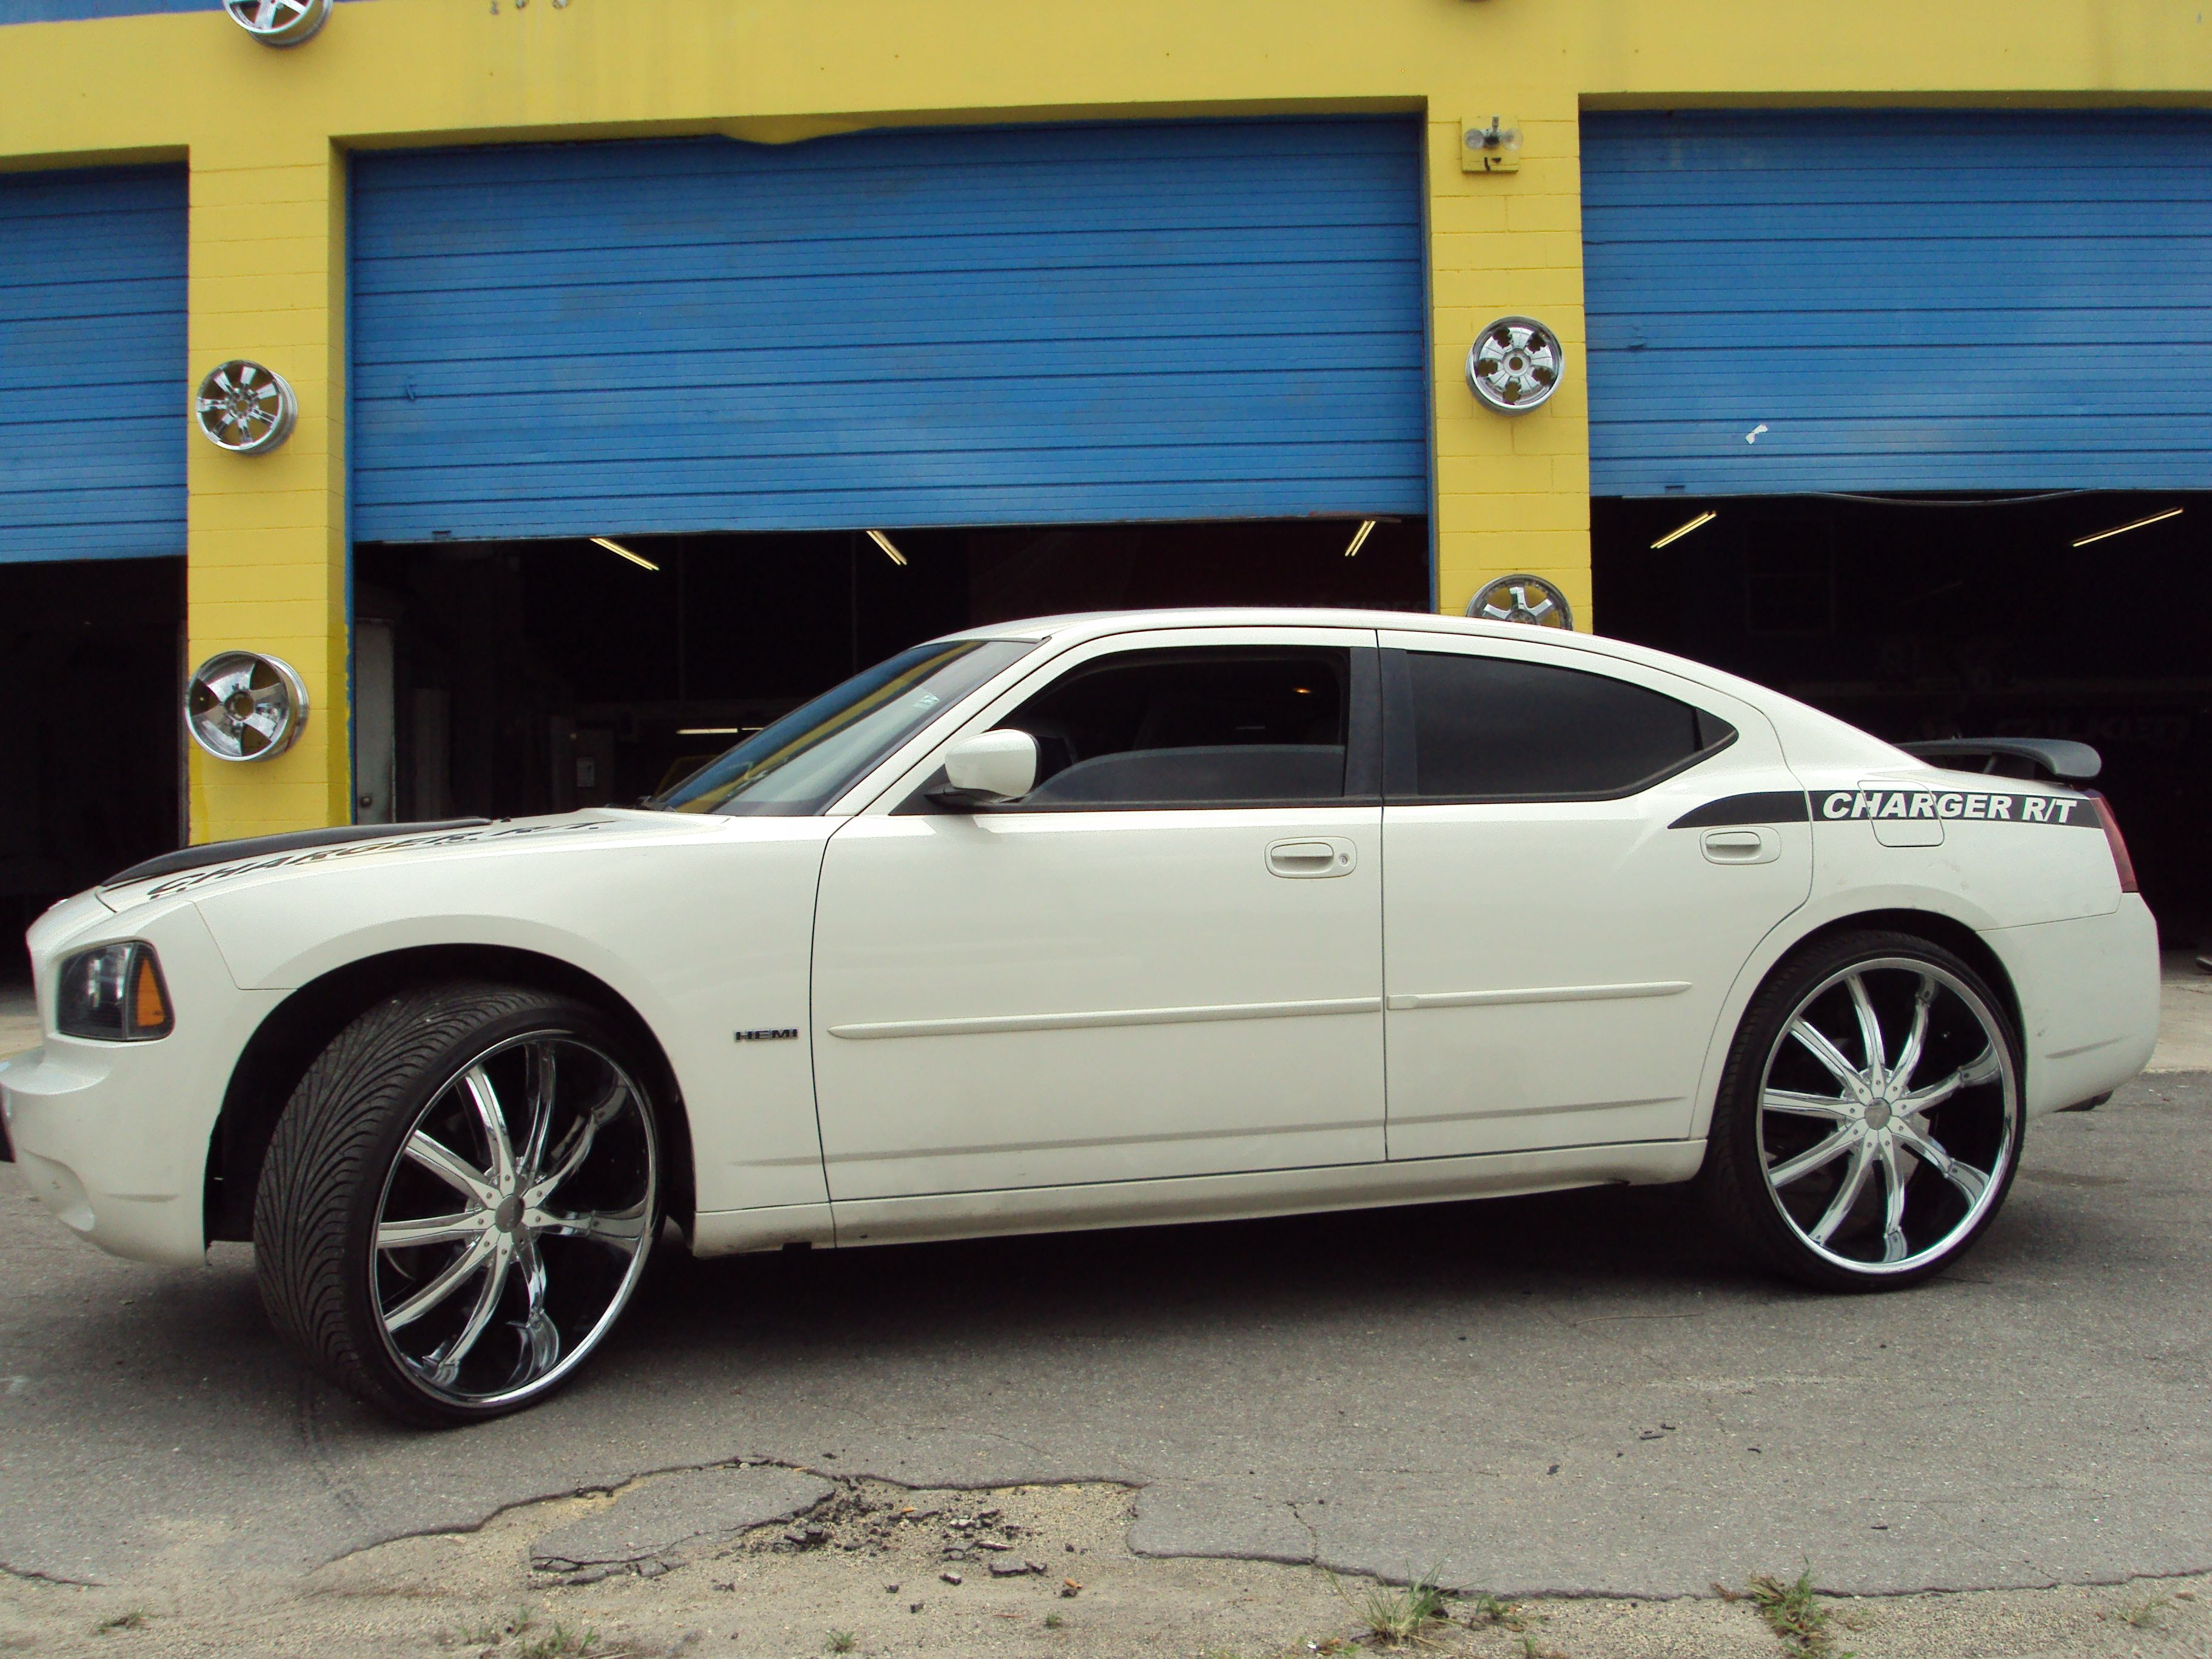 Dodge Charger On 24 Inch Rims Find The Classic Rims Of Your Dreams